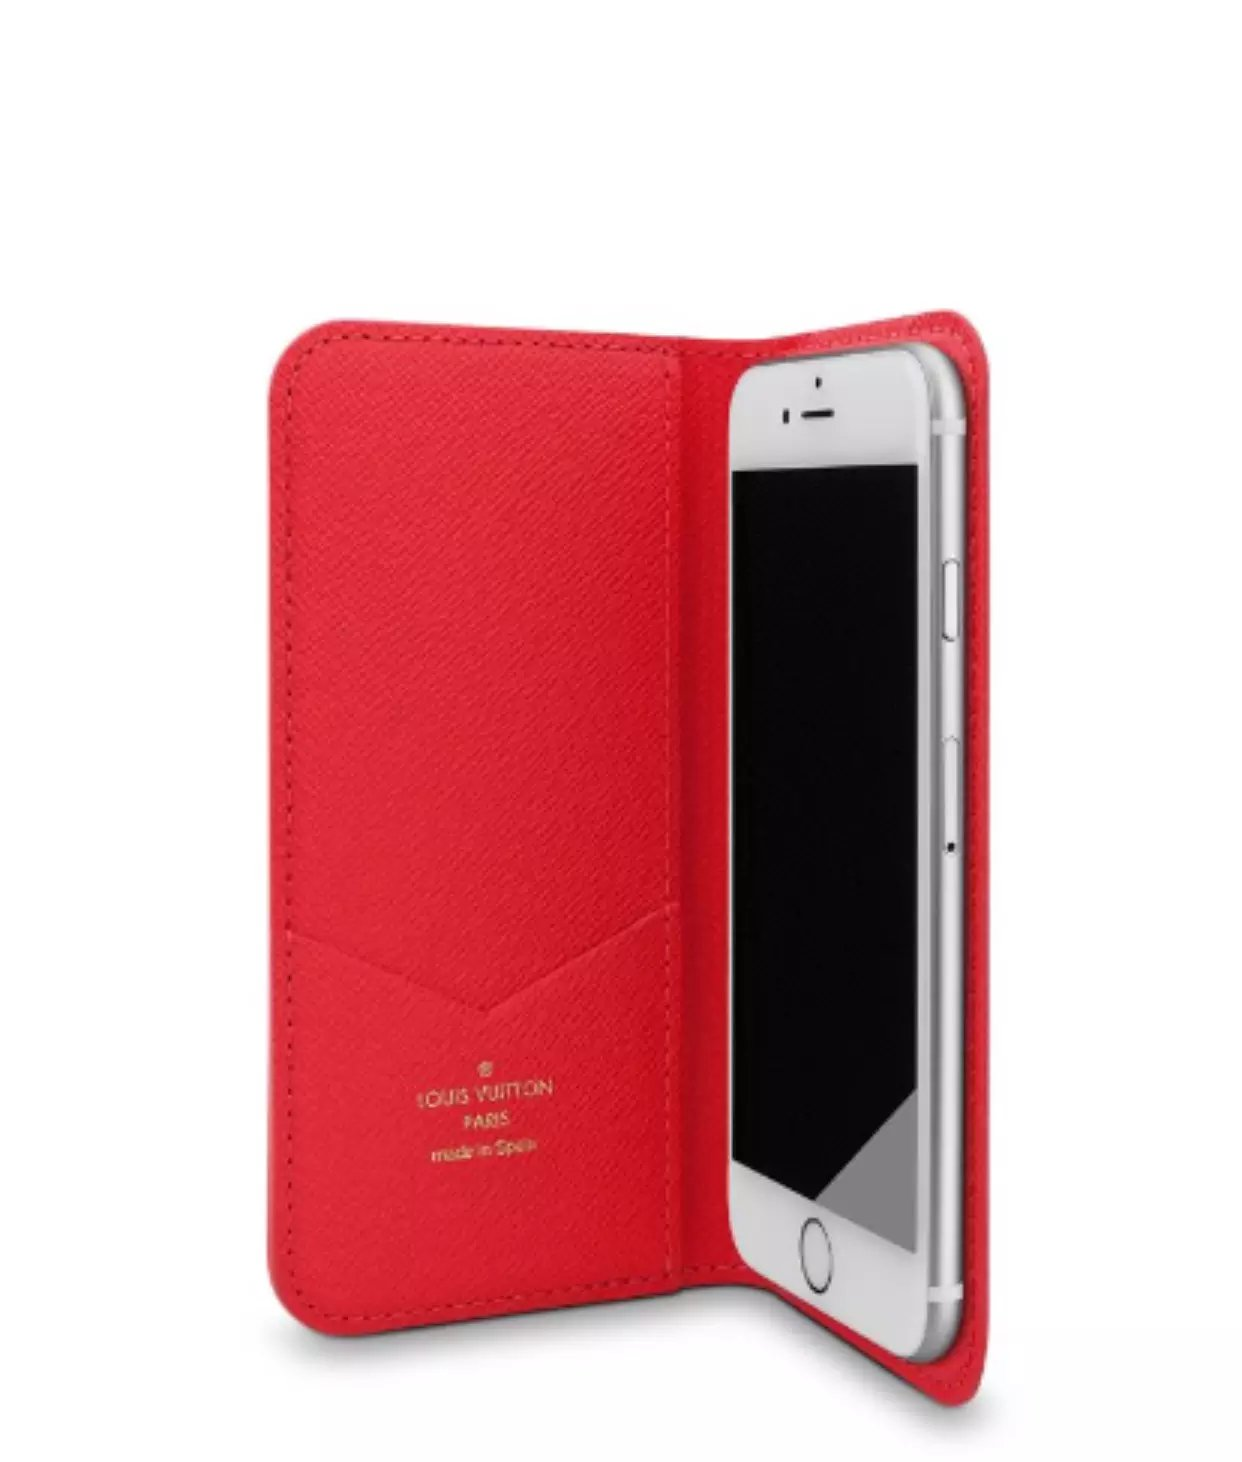 iphone filzhülle handyhülle iphone Louis Vuitton iphone 8 Plus hüllen wann erscheint neues iphone ca8 Plus elber machen handyhülle iphone 8 Plus elbst gestalten handy cover iphone 8 Plus hülle wech8 Plusln handyhülle s 3 mini